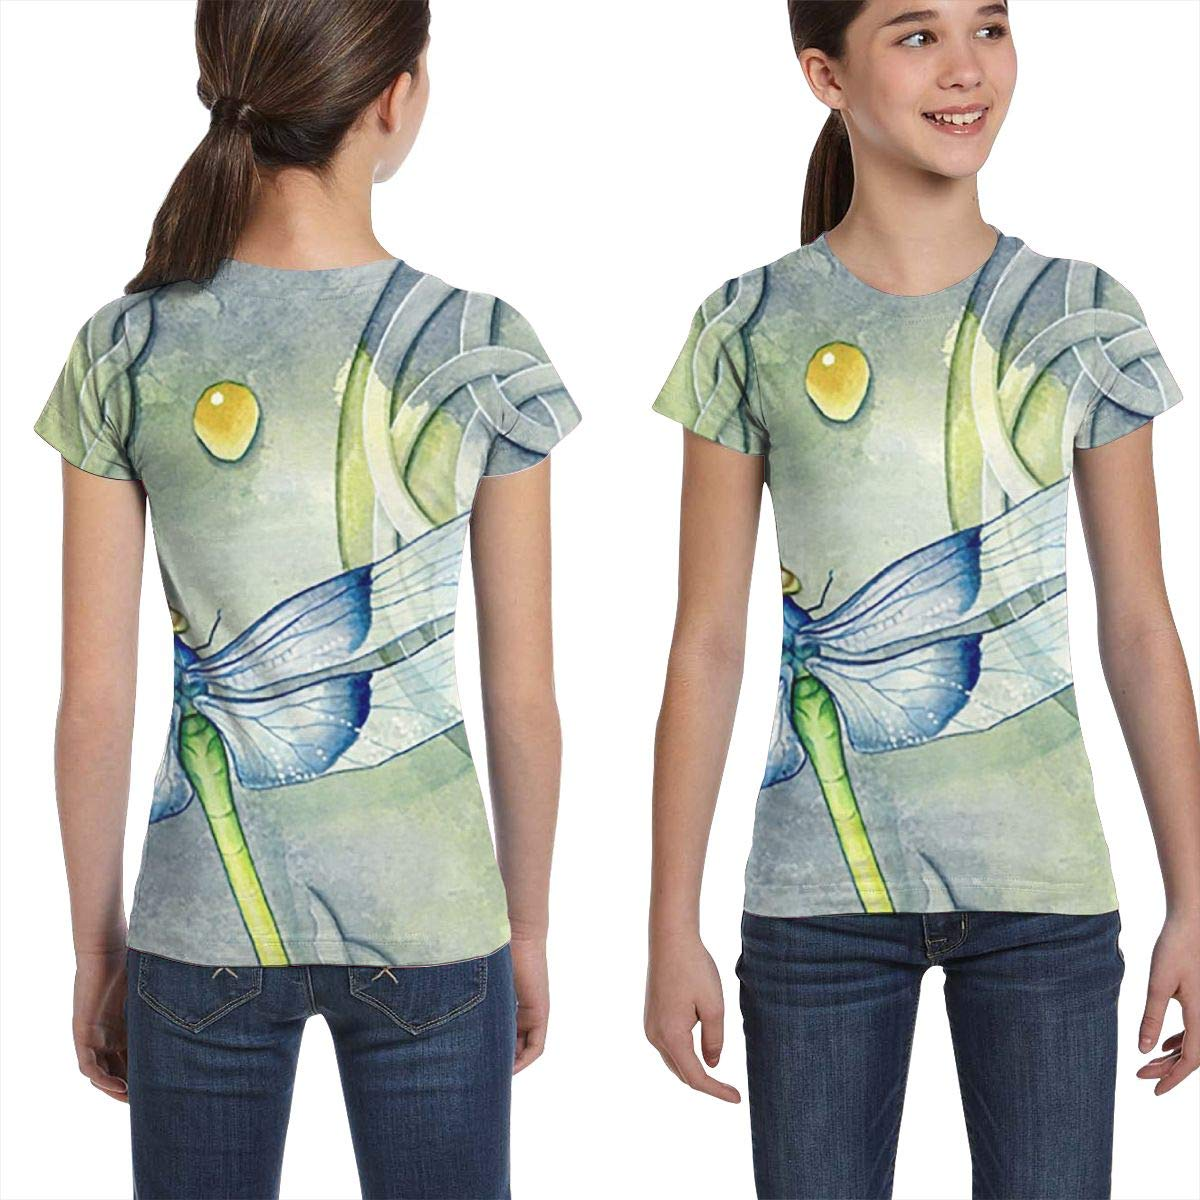 L6Nv4o@A Girls Short Sleeve Cartoon Dragonfly T-Shirts Casual Blouse Clothes XS-XL